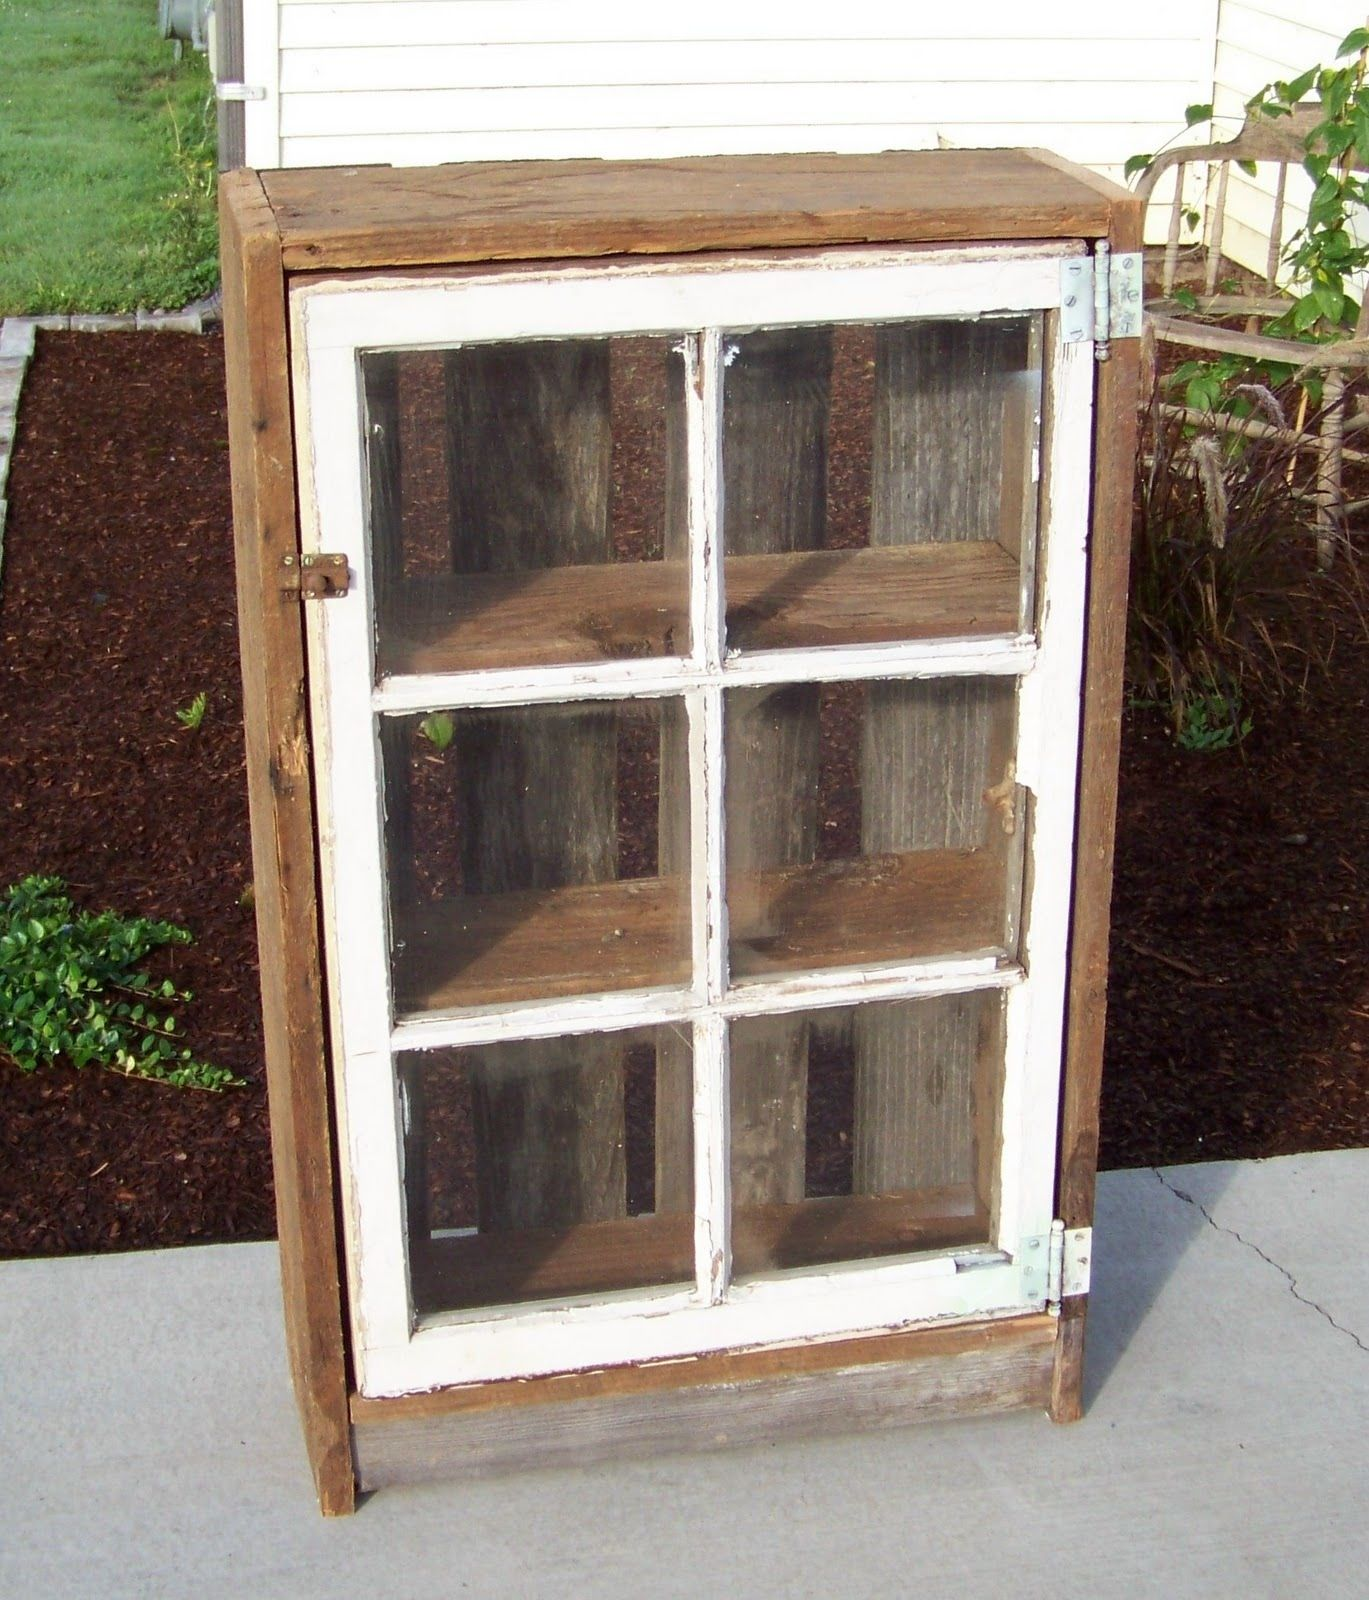 Old Window Pane Idea Cabinet Pane Windows Pinterest Window Craft And Window Frames